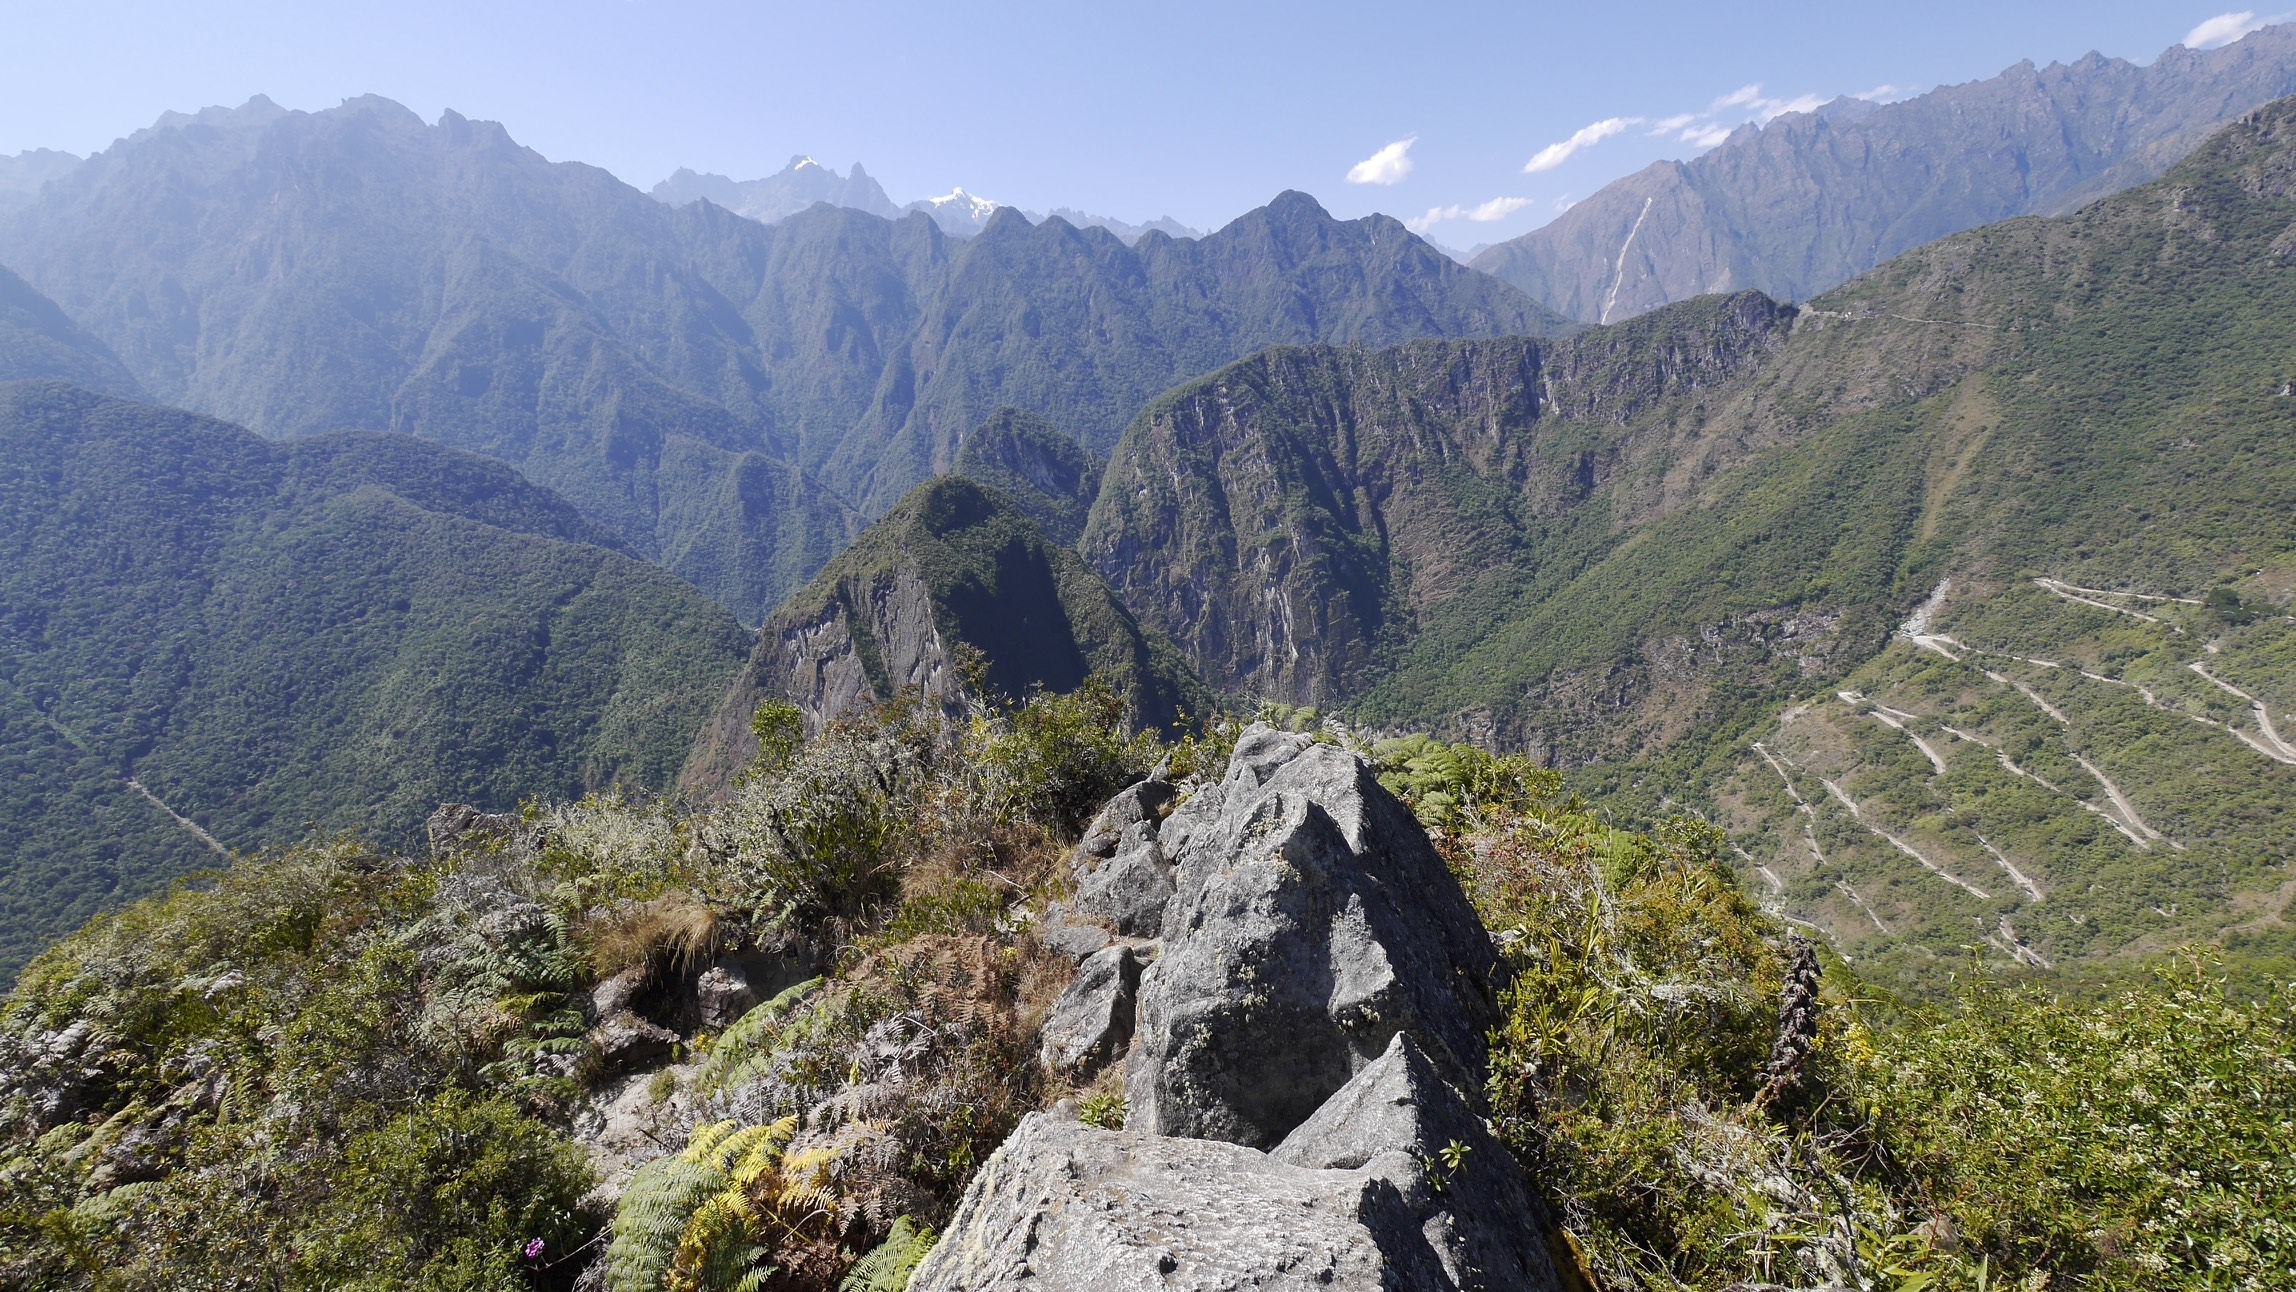 The top of Huayna Picchu